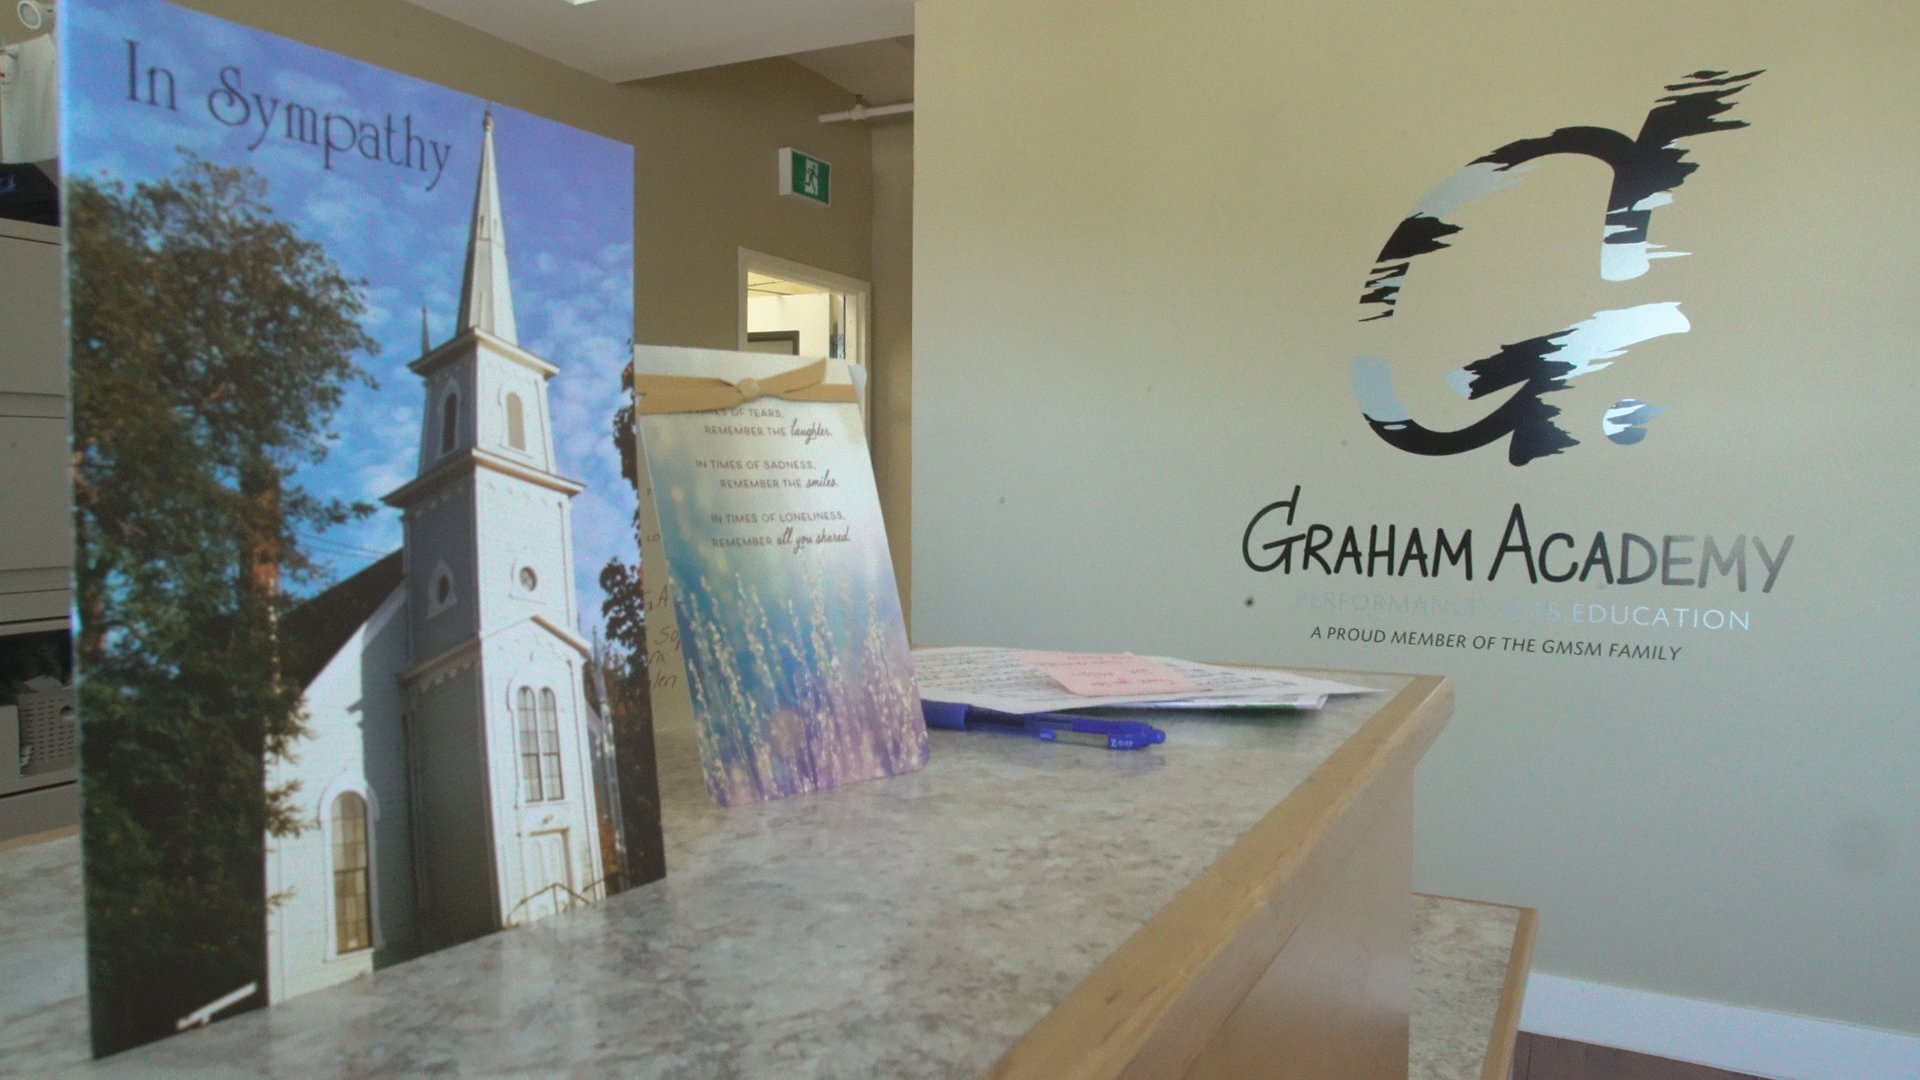 Sympathy cards were placed on the front desk in the lobby of the Graham Academy. (Jen White/CBC)